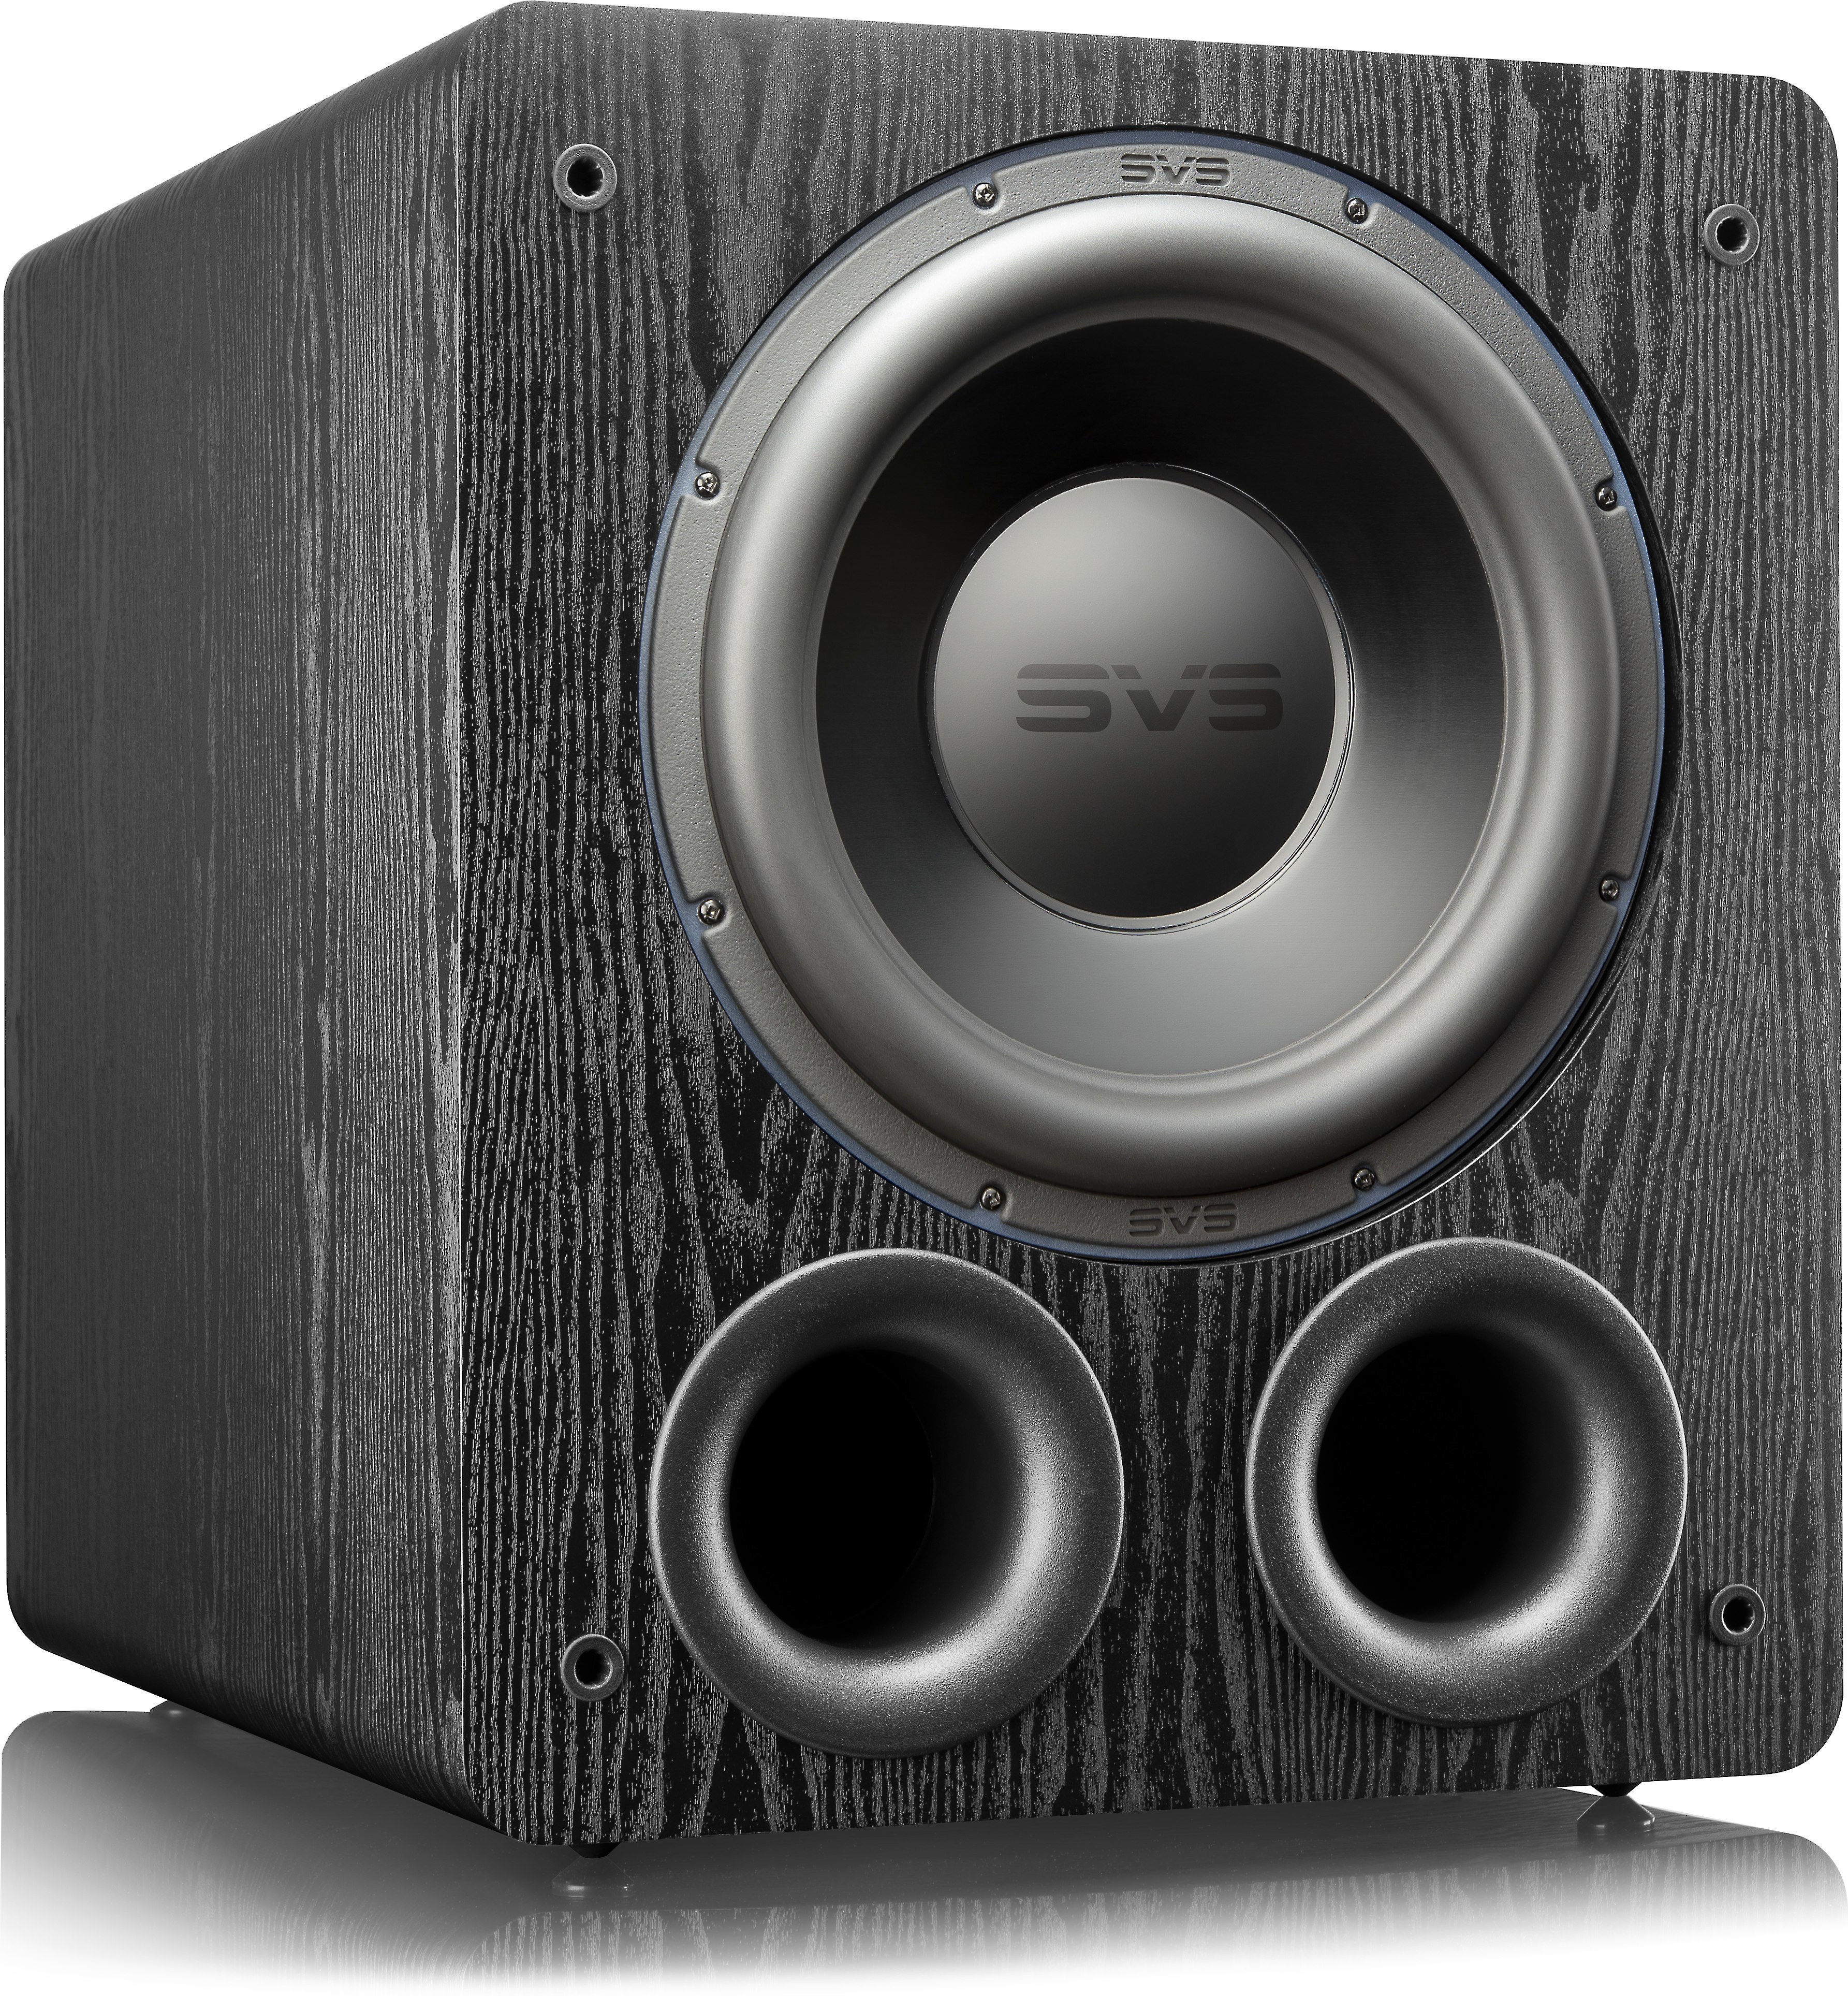 Svs Pb 3000 Powered Subwoofer With App Control At Crutchfield